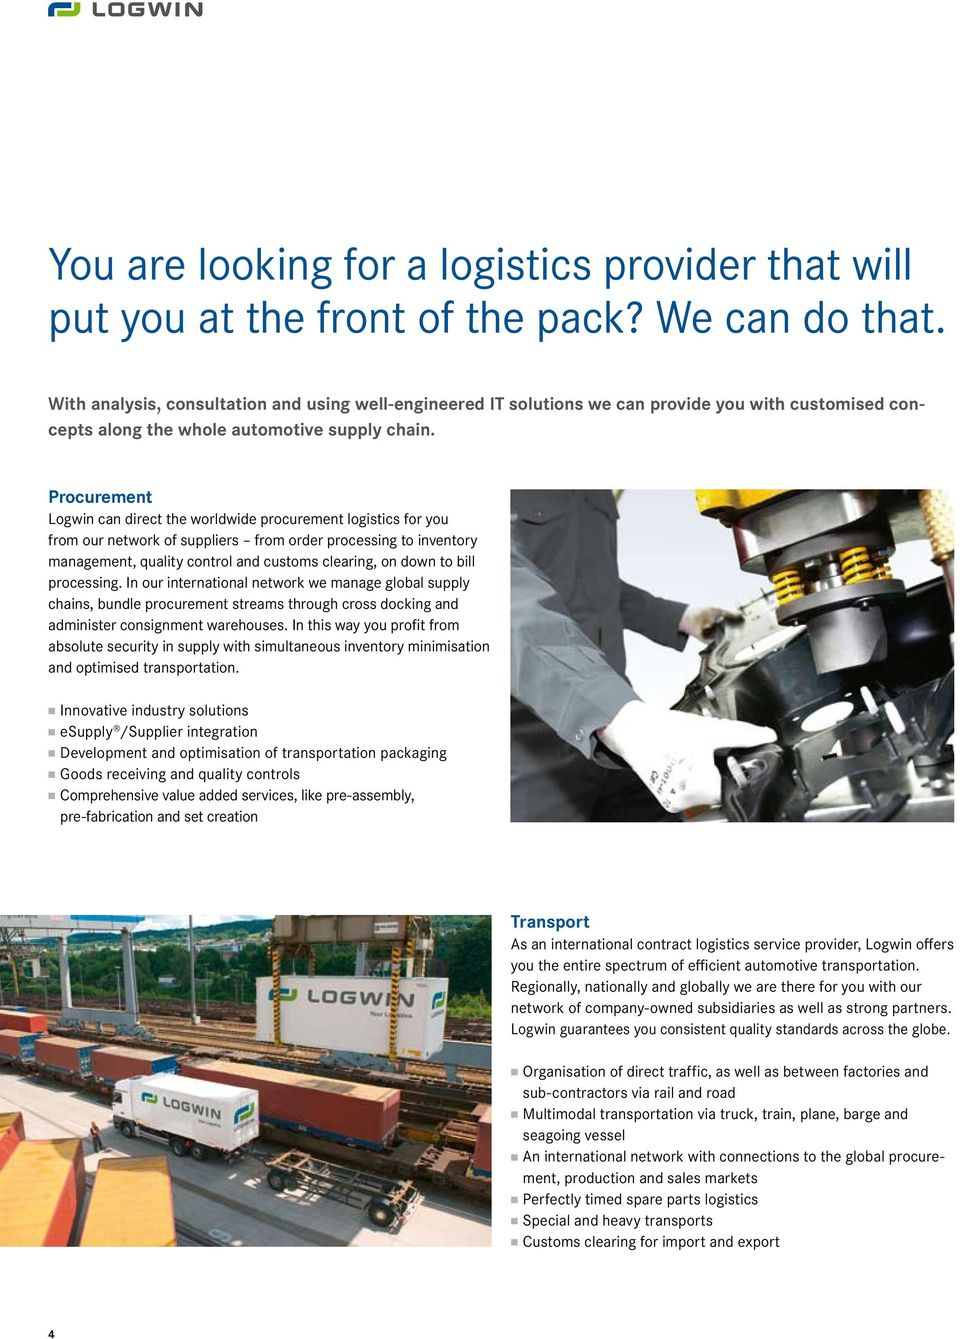 Procurement Logwin can direct the worldwide procurement logistics for you from our network of suppliers from order processing to inventory management, quality control and customs clearing, on down to